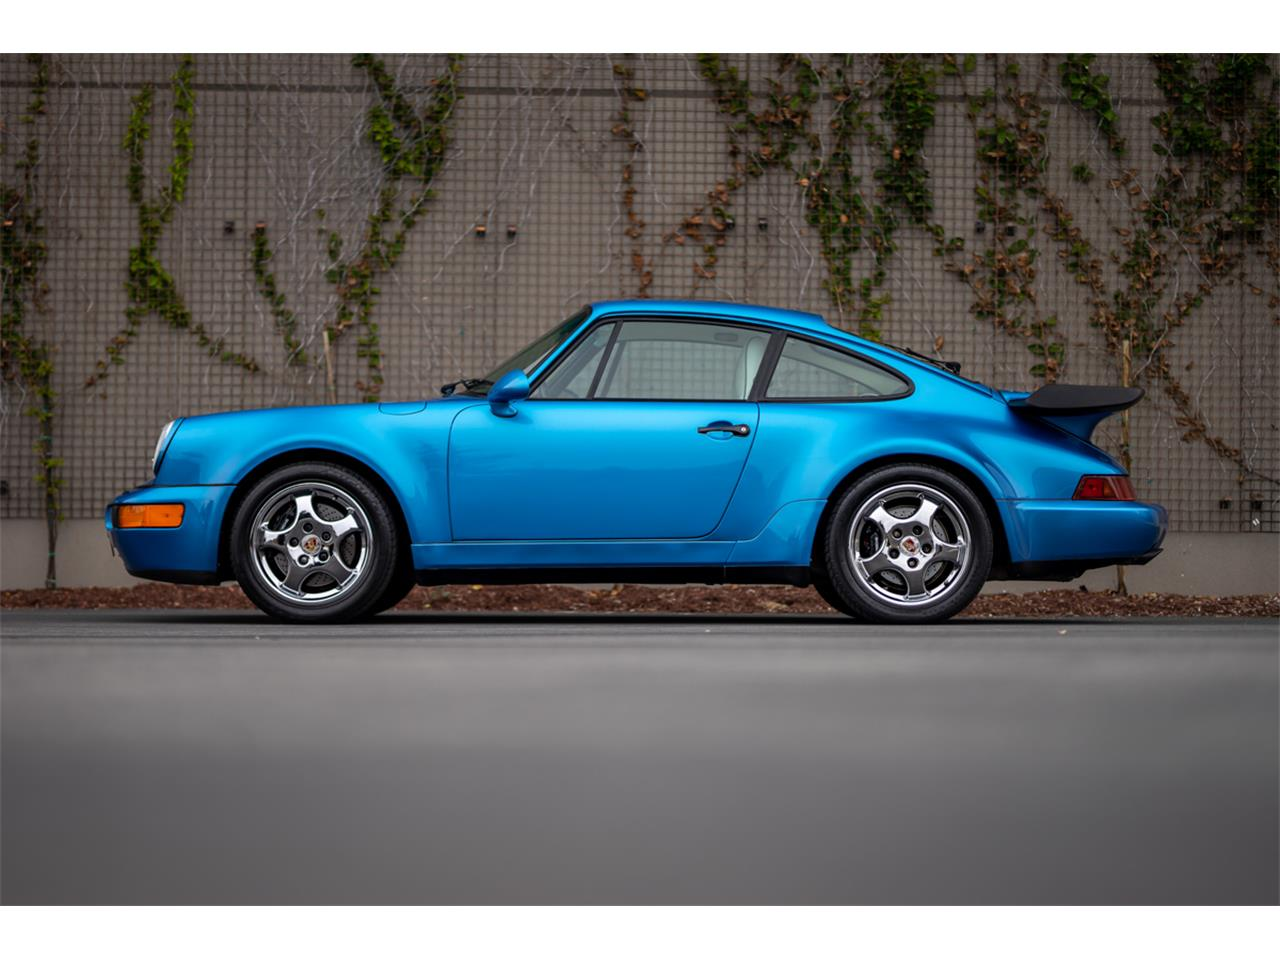 Large Picture of '92 Porsche 911 Turbo located in Monterey California Auction Vehicle Offered by Bring A Trailer - R2P1